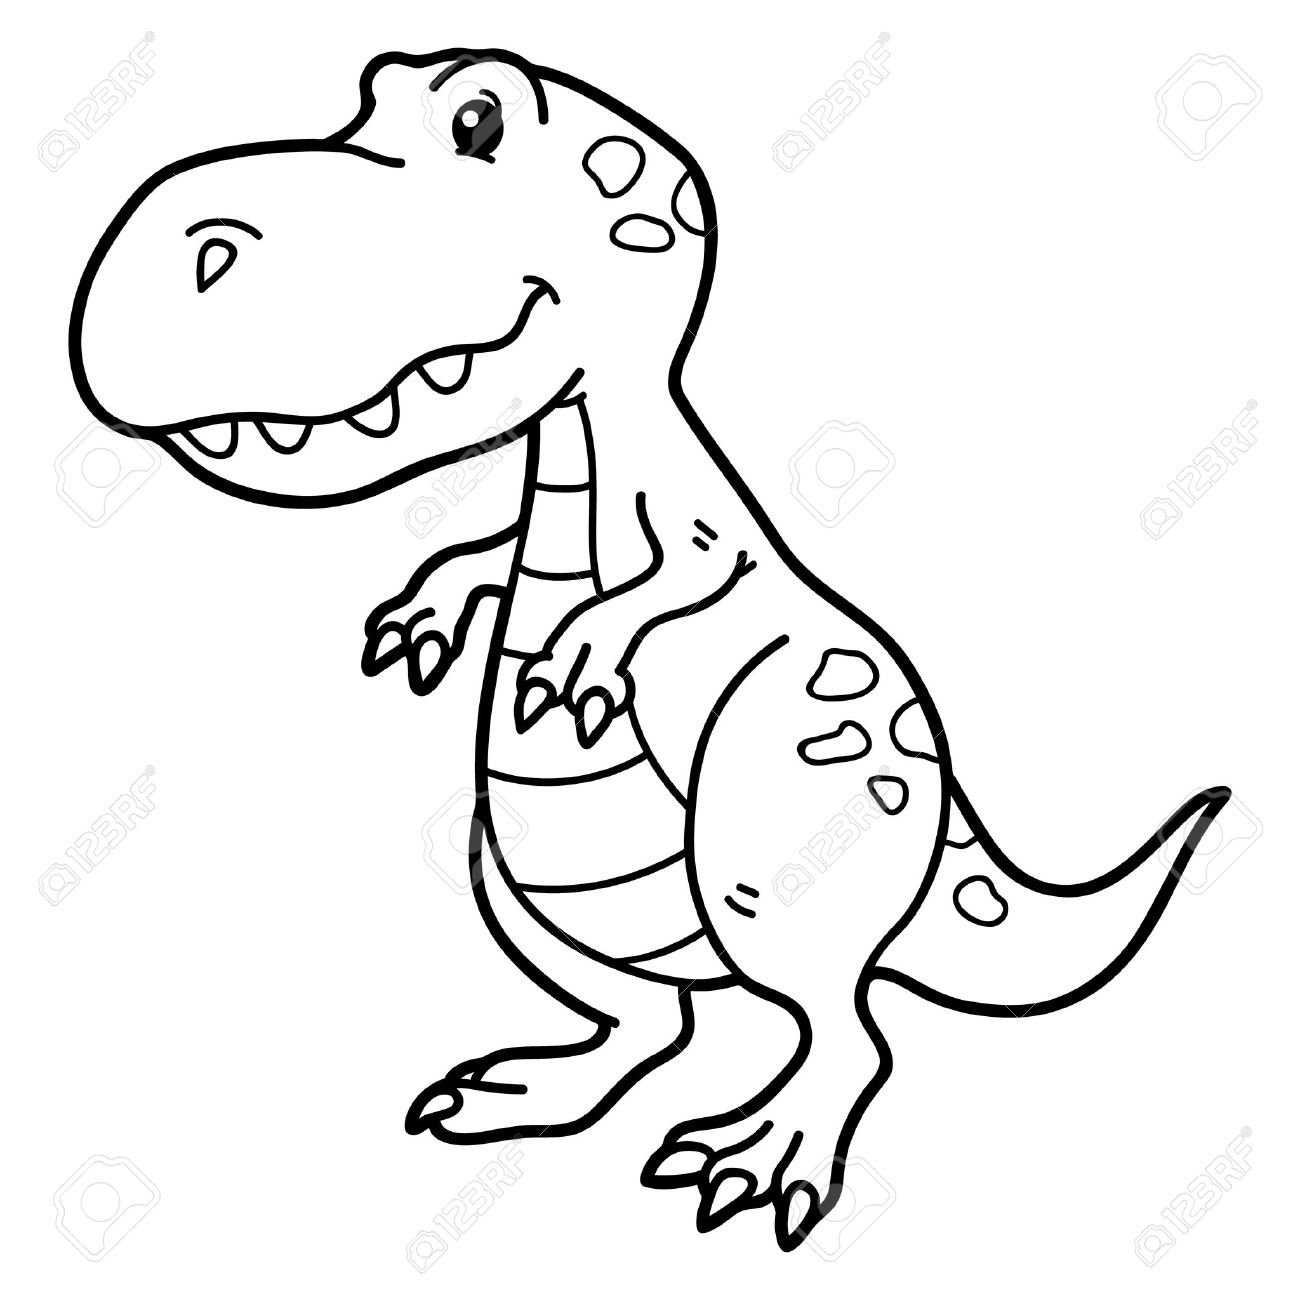 vector vector illustration of cute cartoon dinosaur character for children coloring and scrap book - Children Coloring